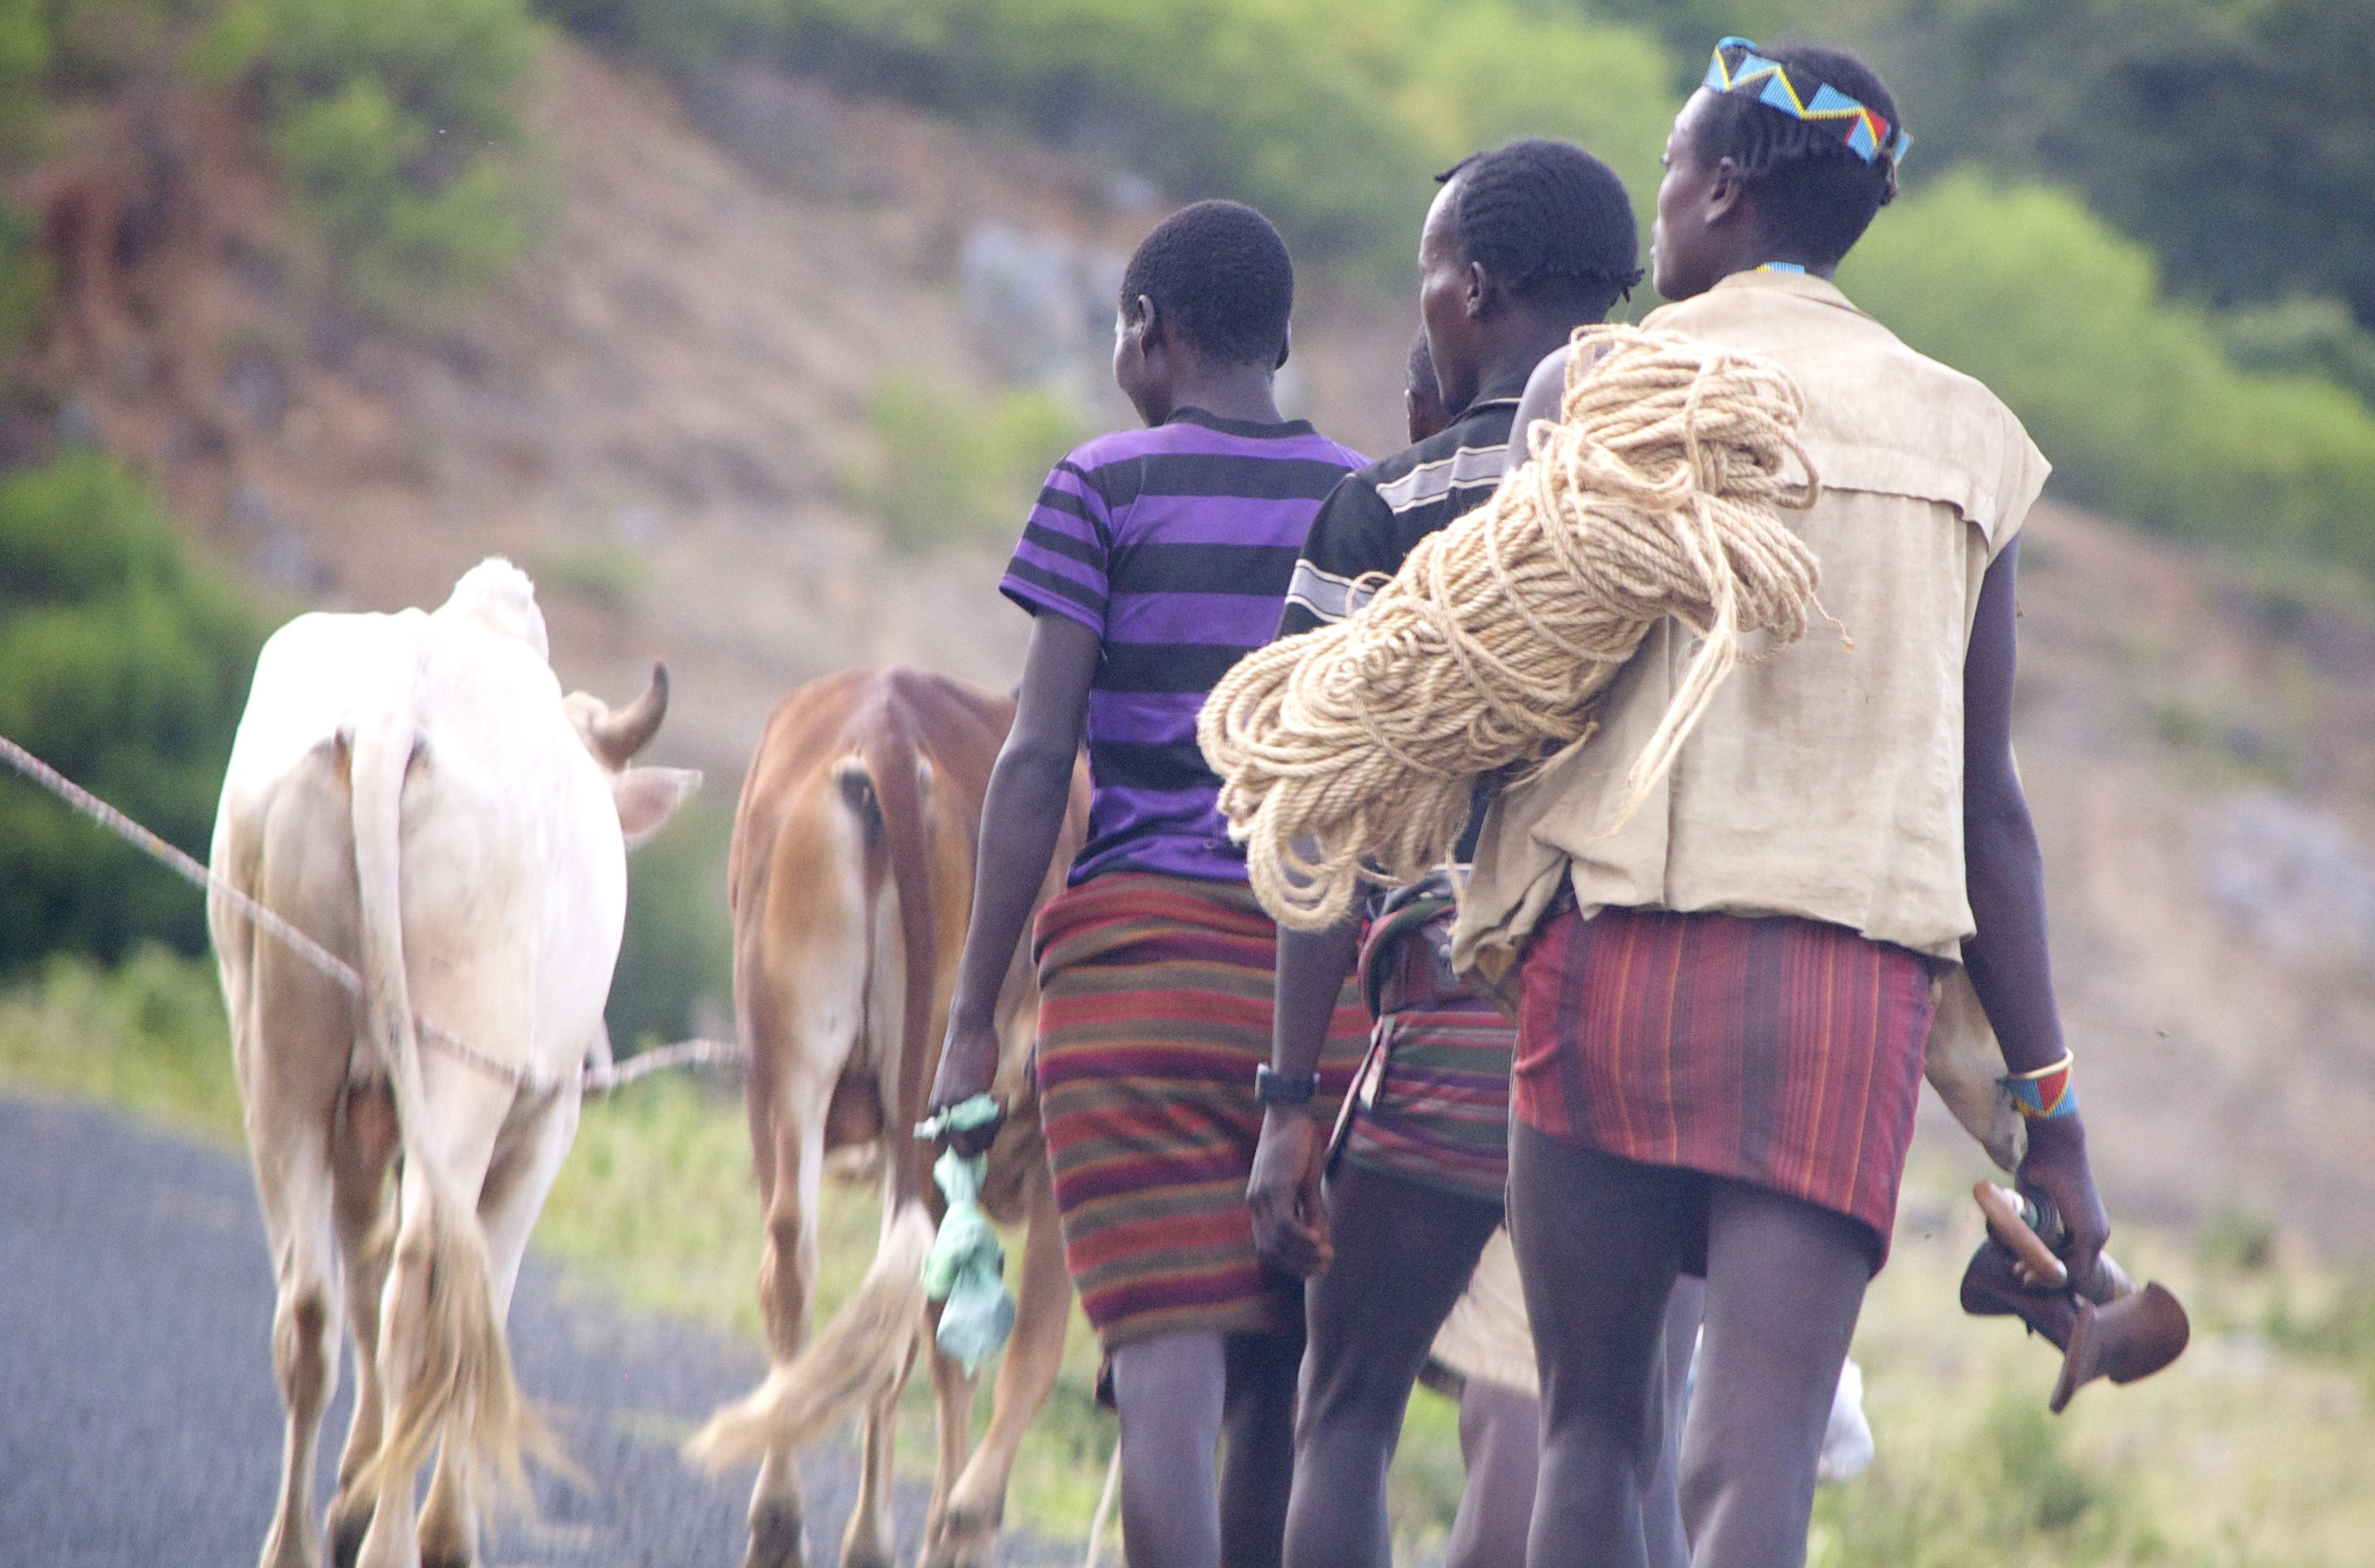 Tribe members walking from the market